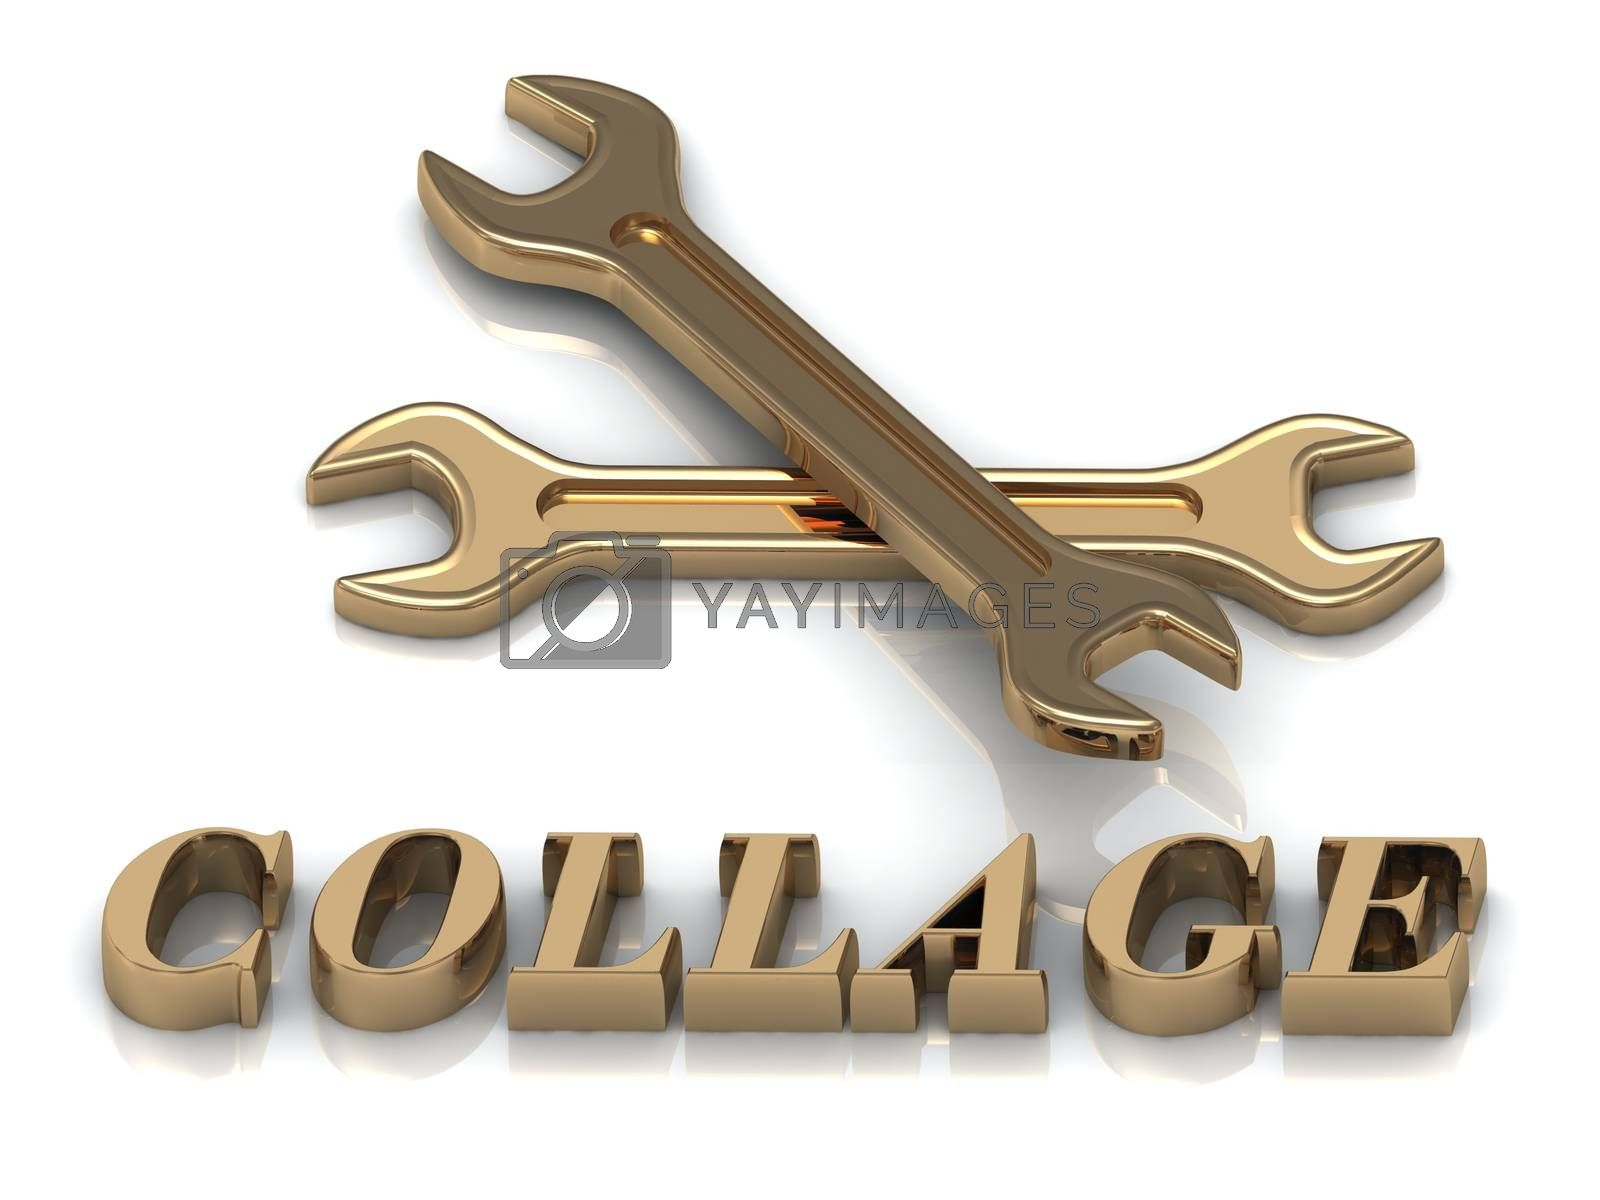 COLLAGE- inscription of metal letters and 2 keys on white background